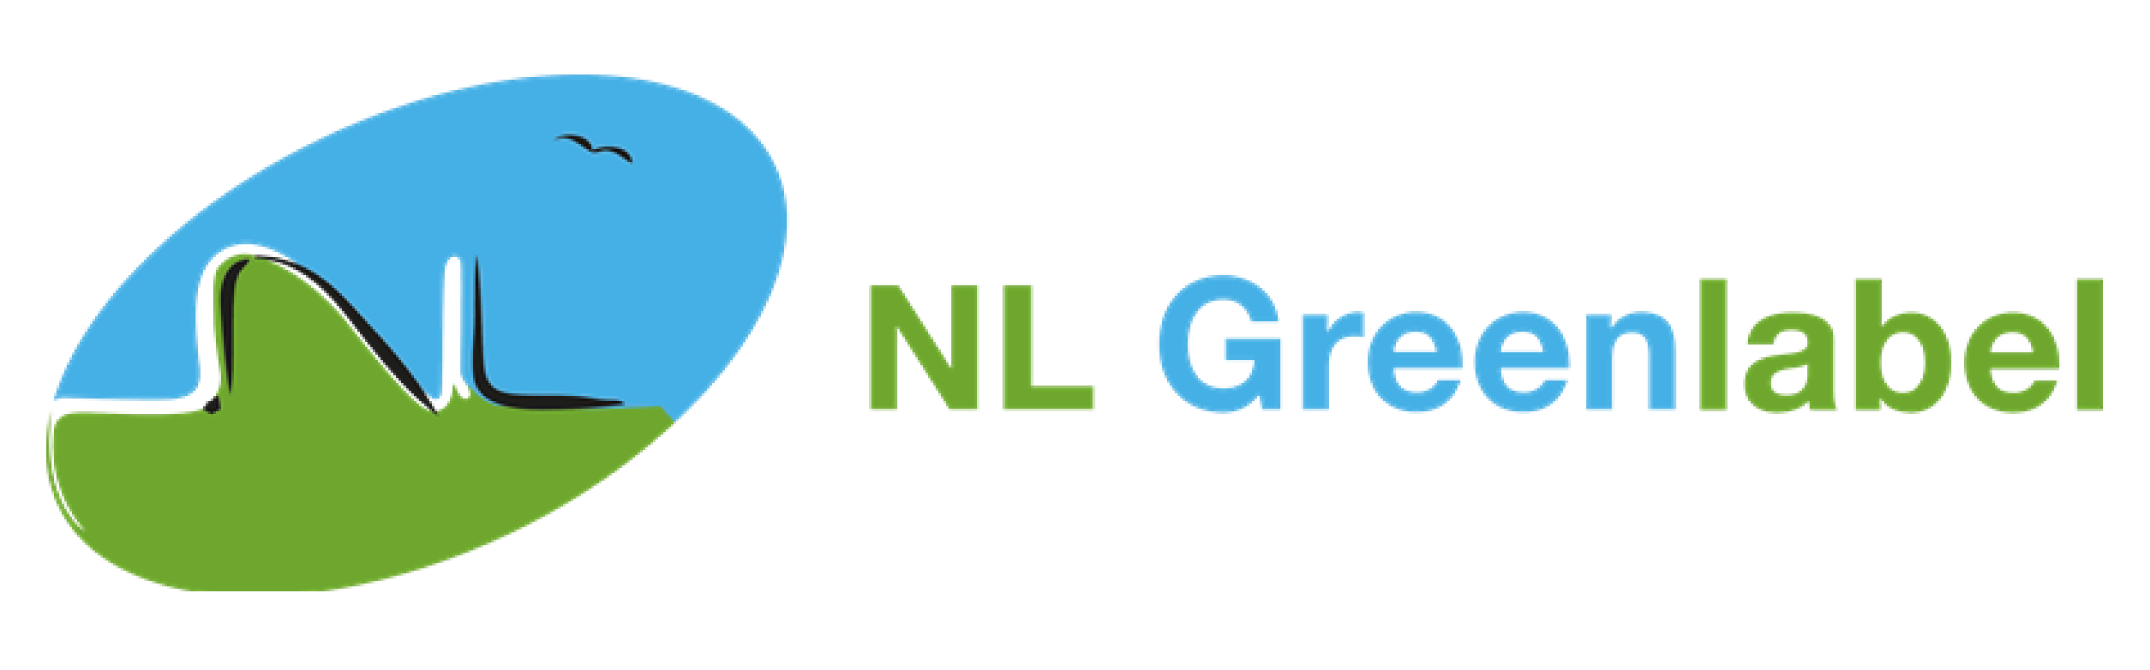 LOGO-NL-Greenlabel.png